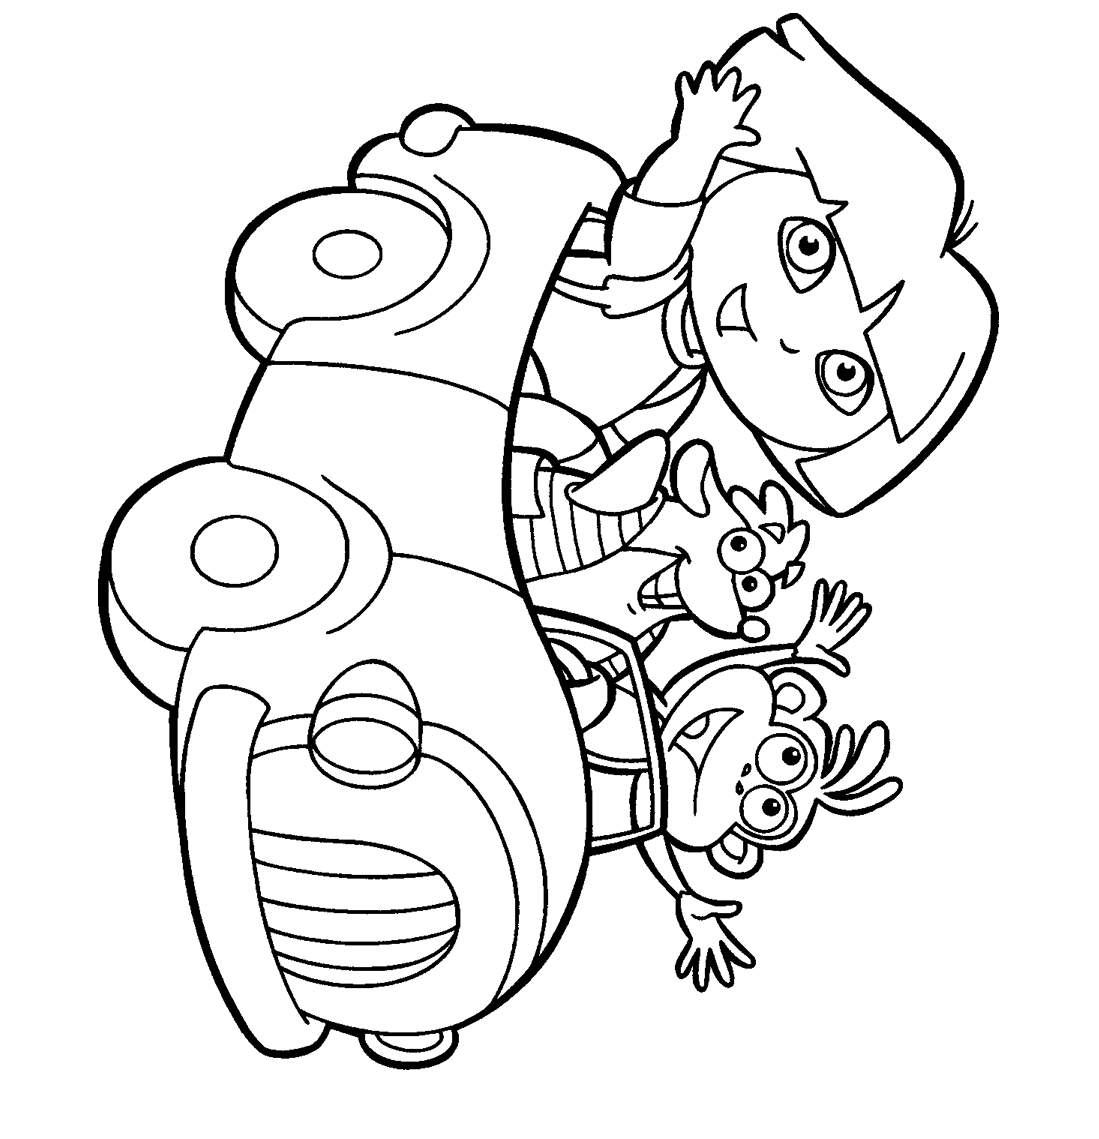 dora colouring pages printable print download dora coloring pages to learn new things printable colouring pages dora